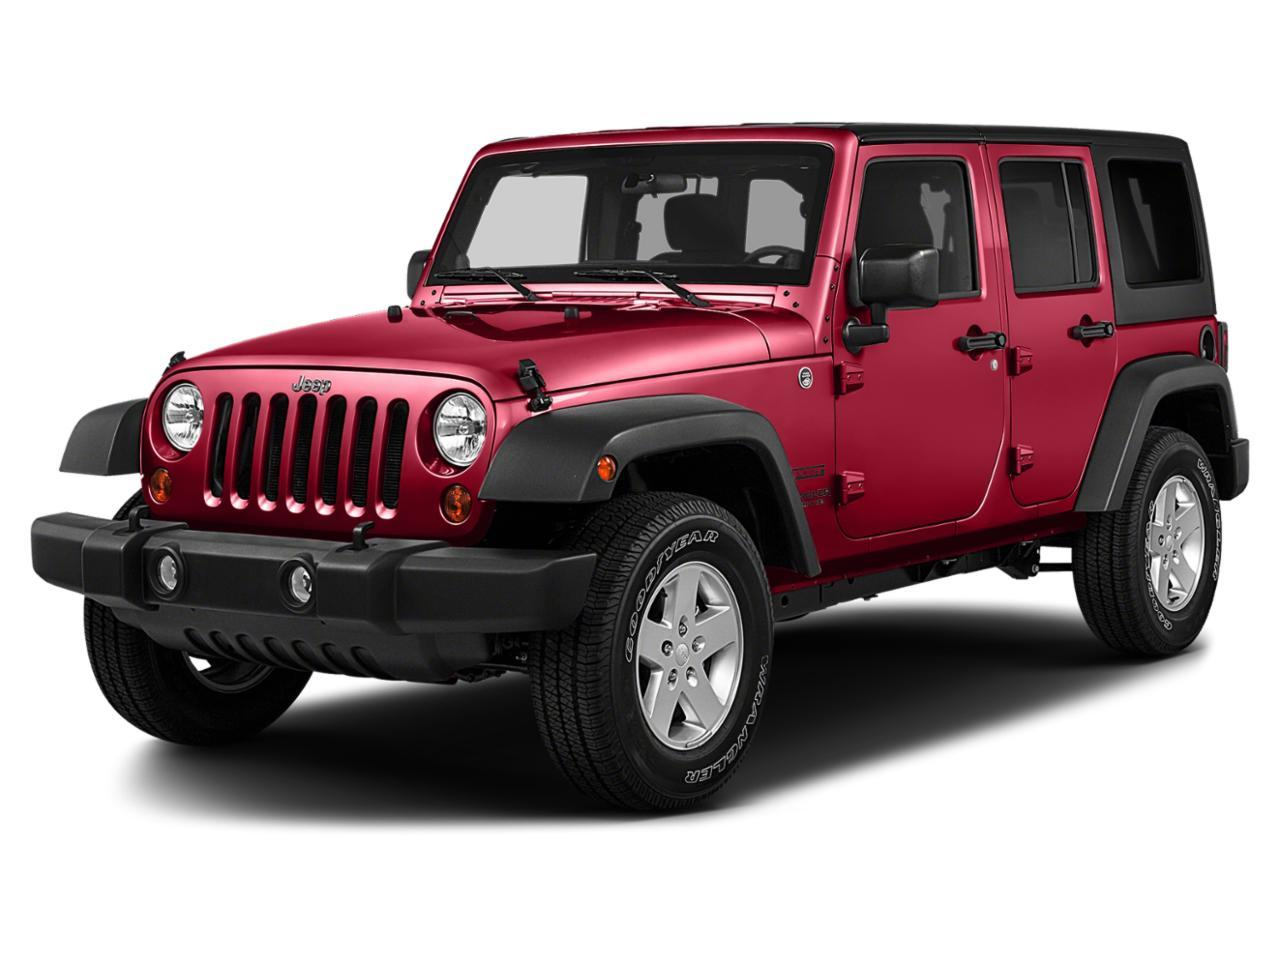 2018 Jeep Wrangler JK Unlimited Vehicle Photo in Twin Falls, ID 83301